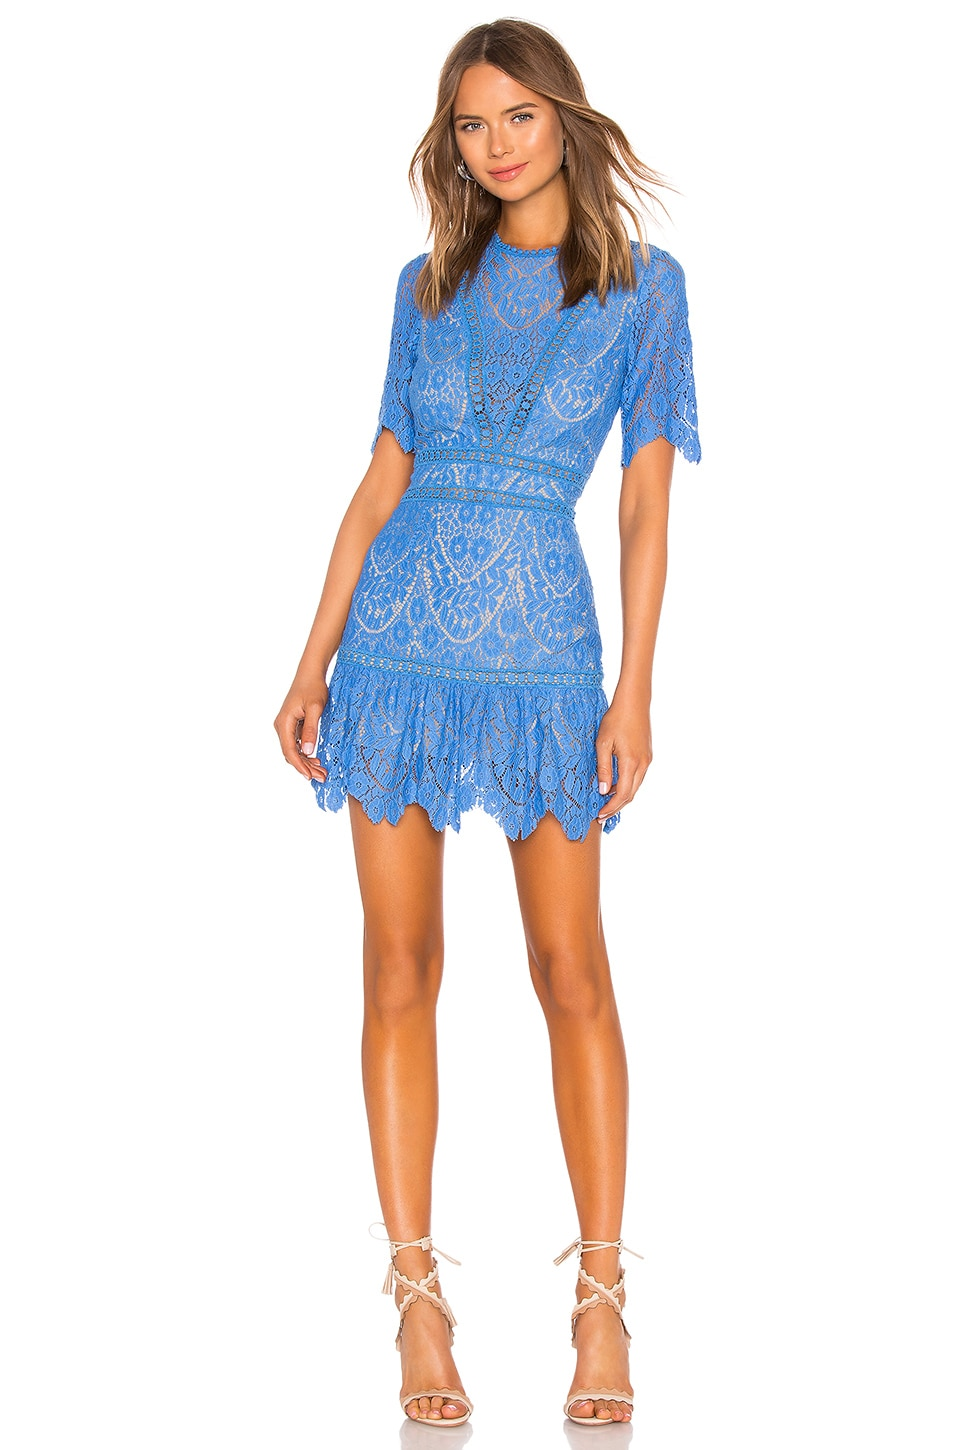 SAYLOR Darian Dress in Blue